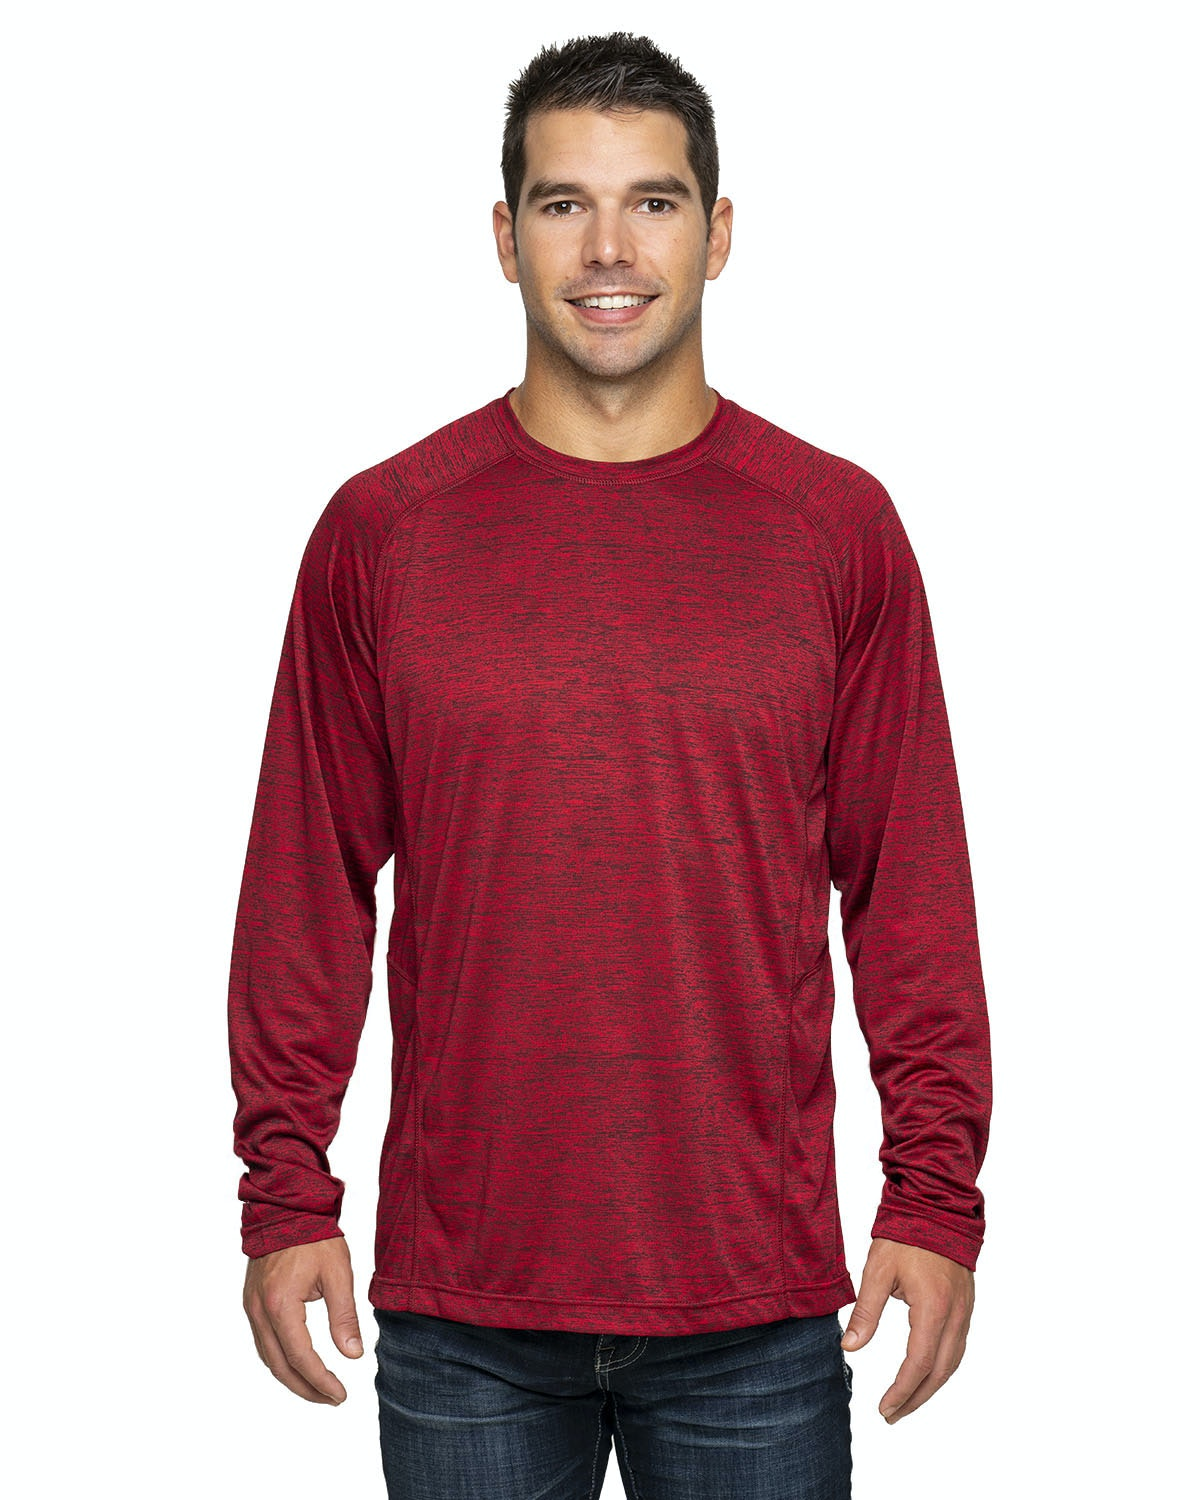 Rawlings RP8191 Heather Red